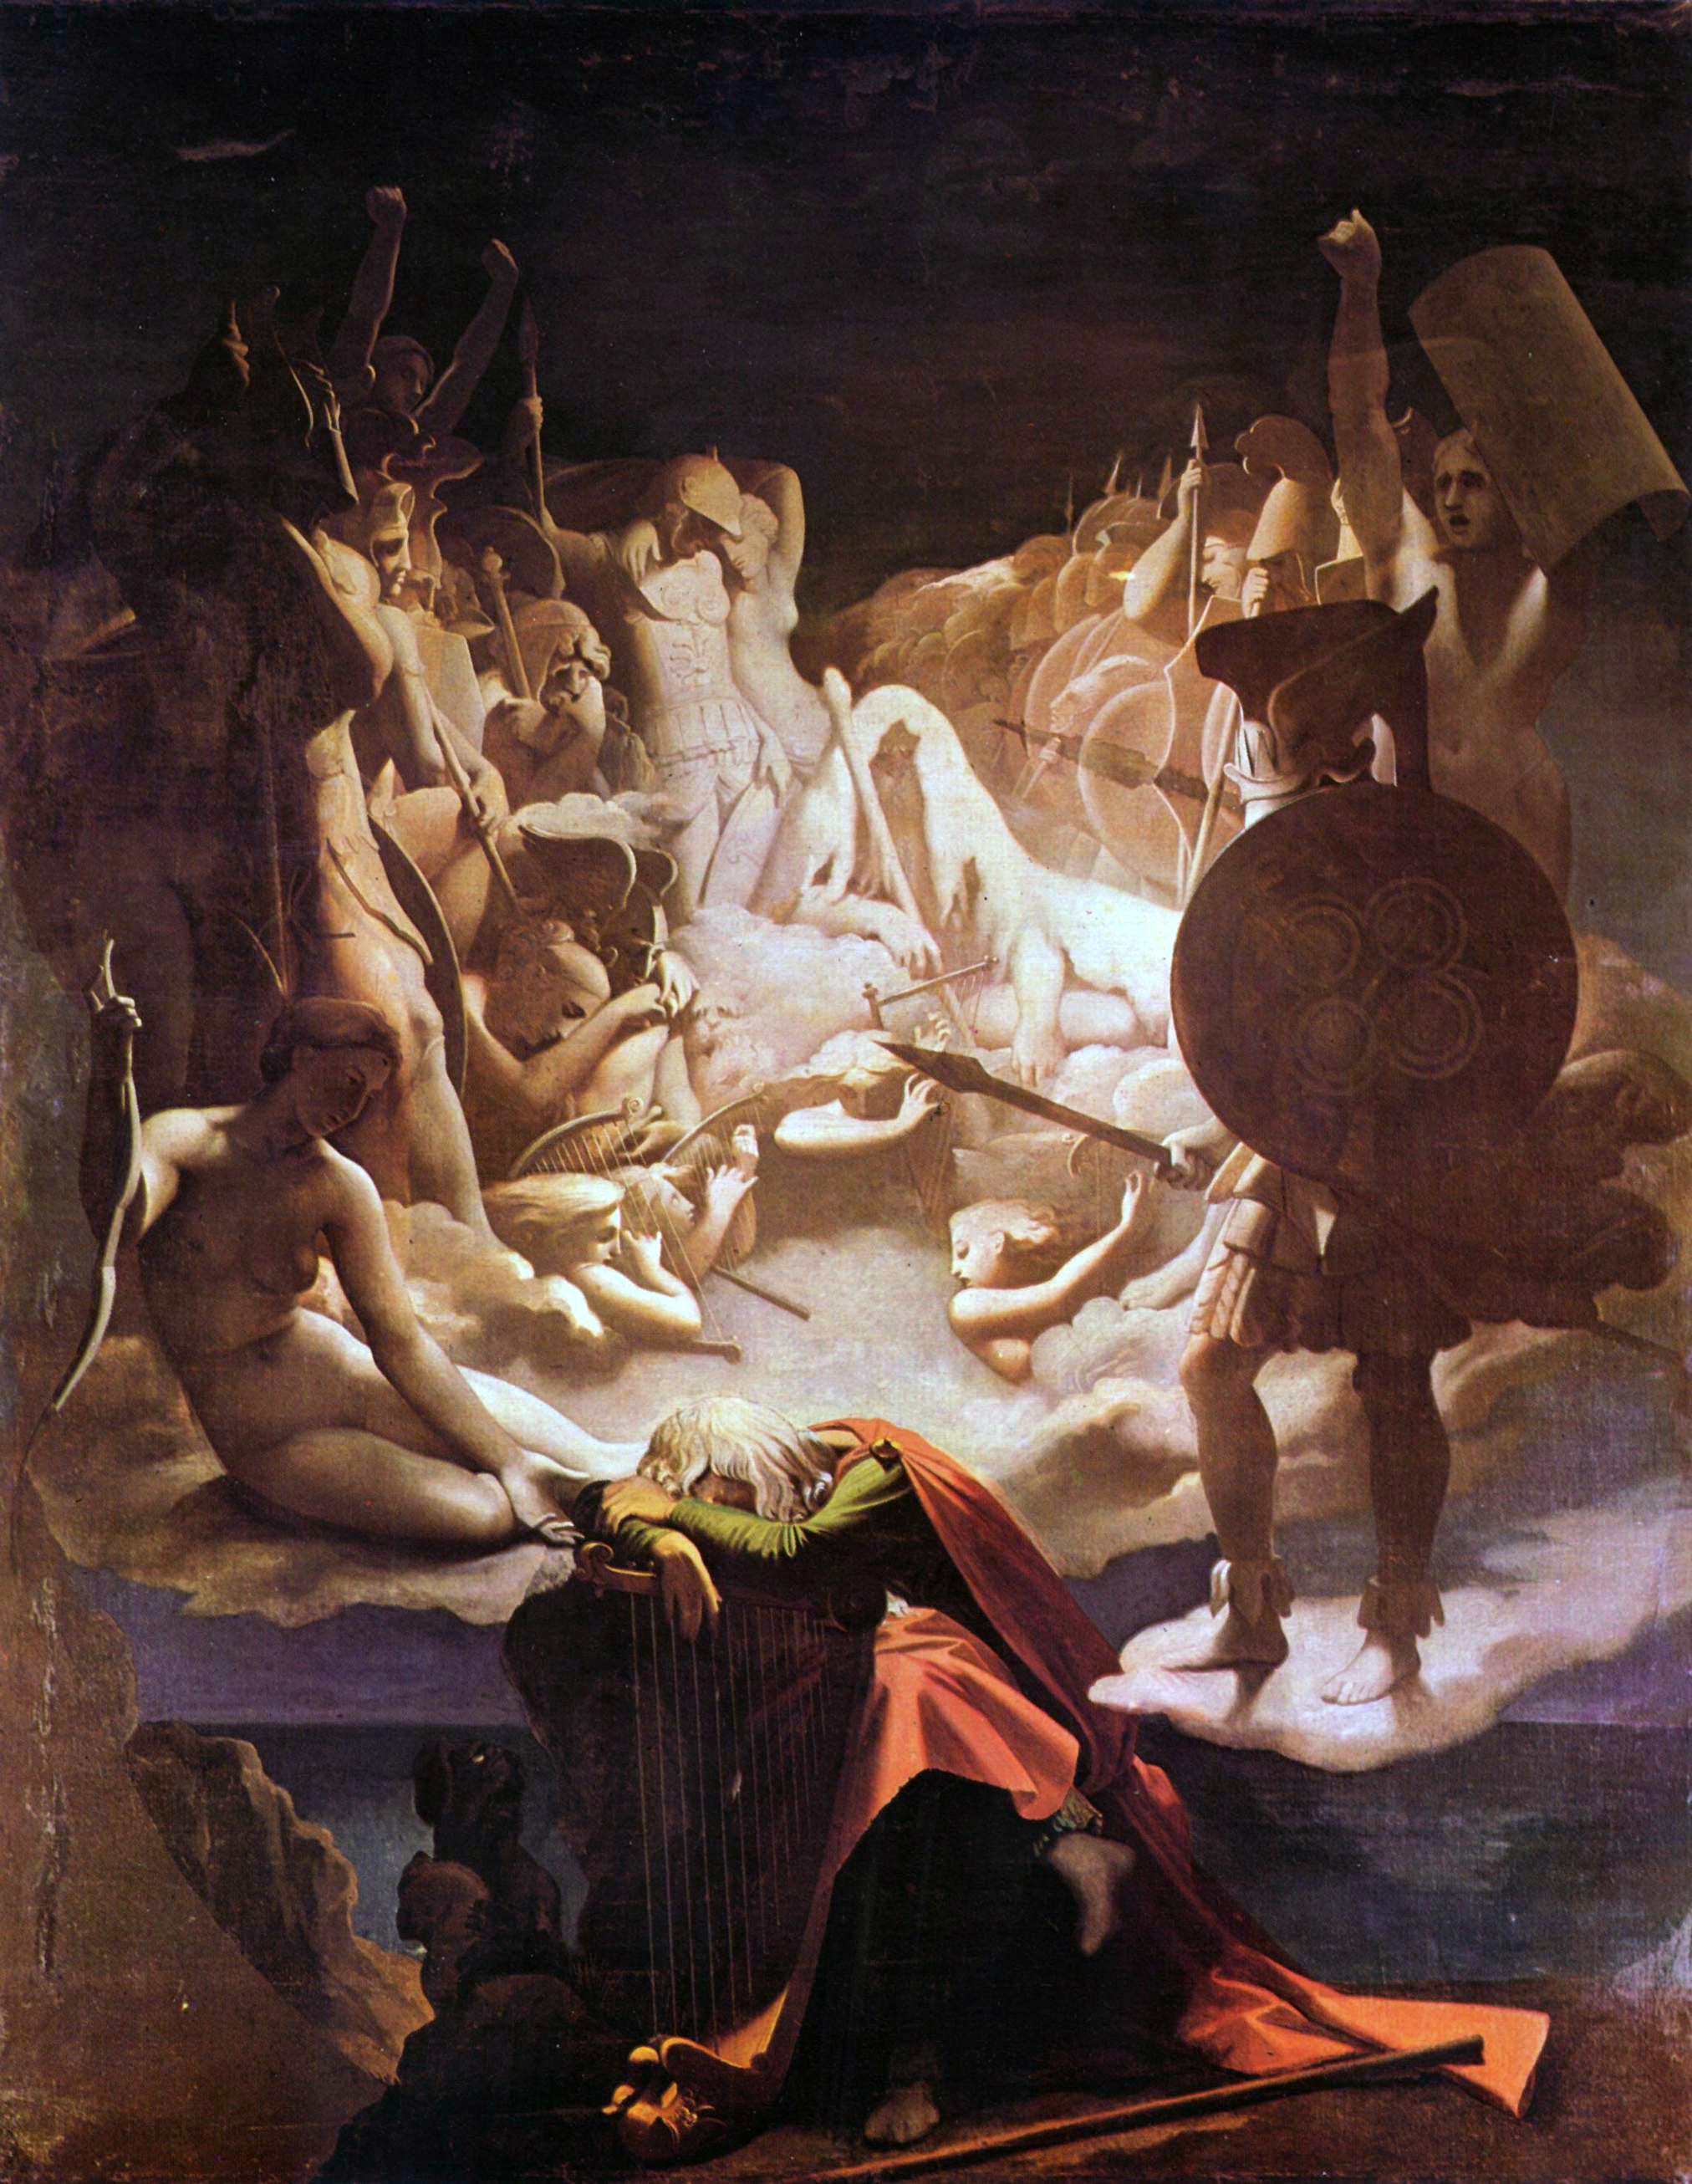 Ossian's dream by Ingres